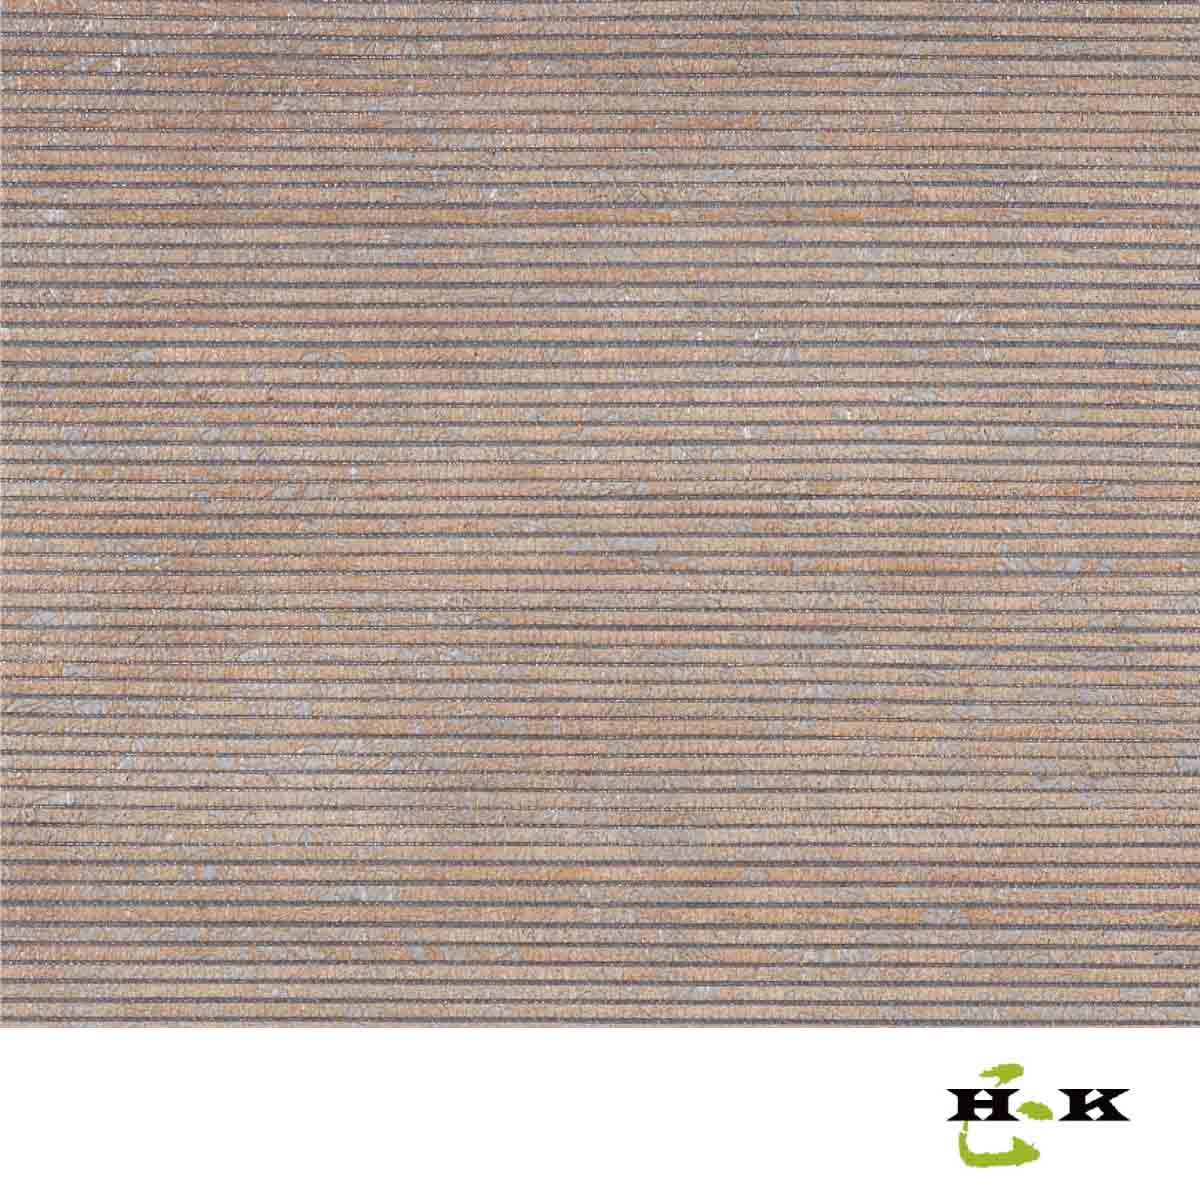 Eco friendly materials unusual wall coverings